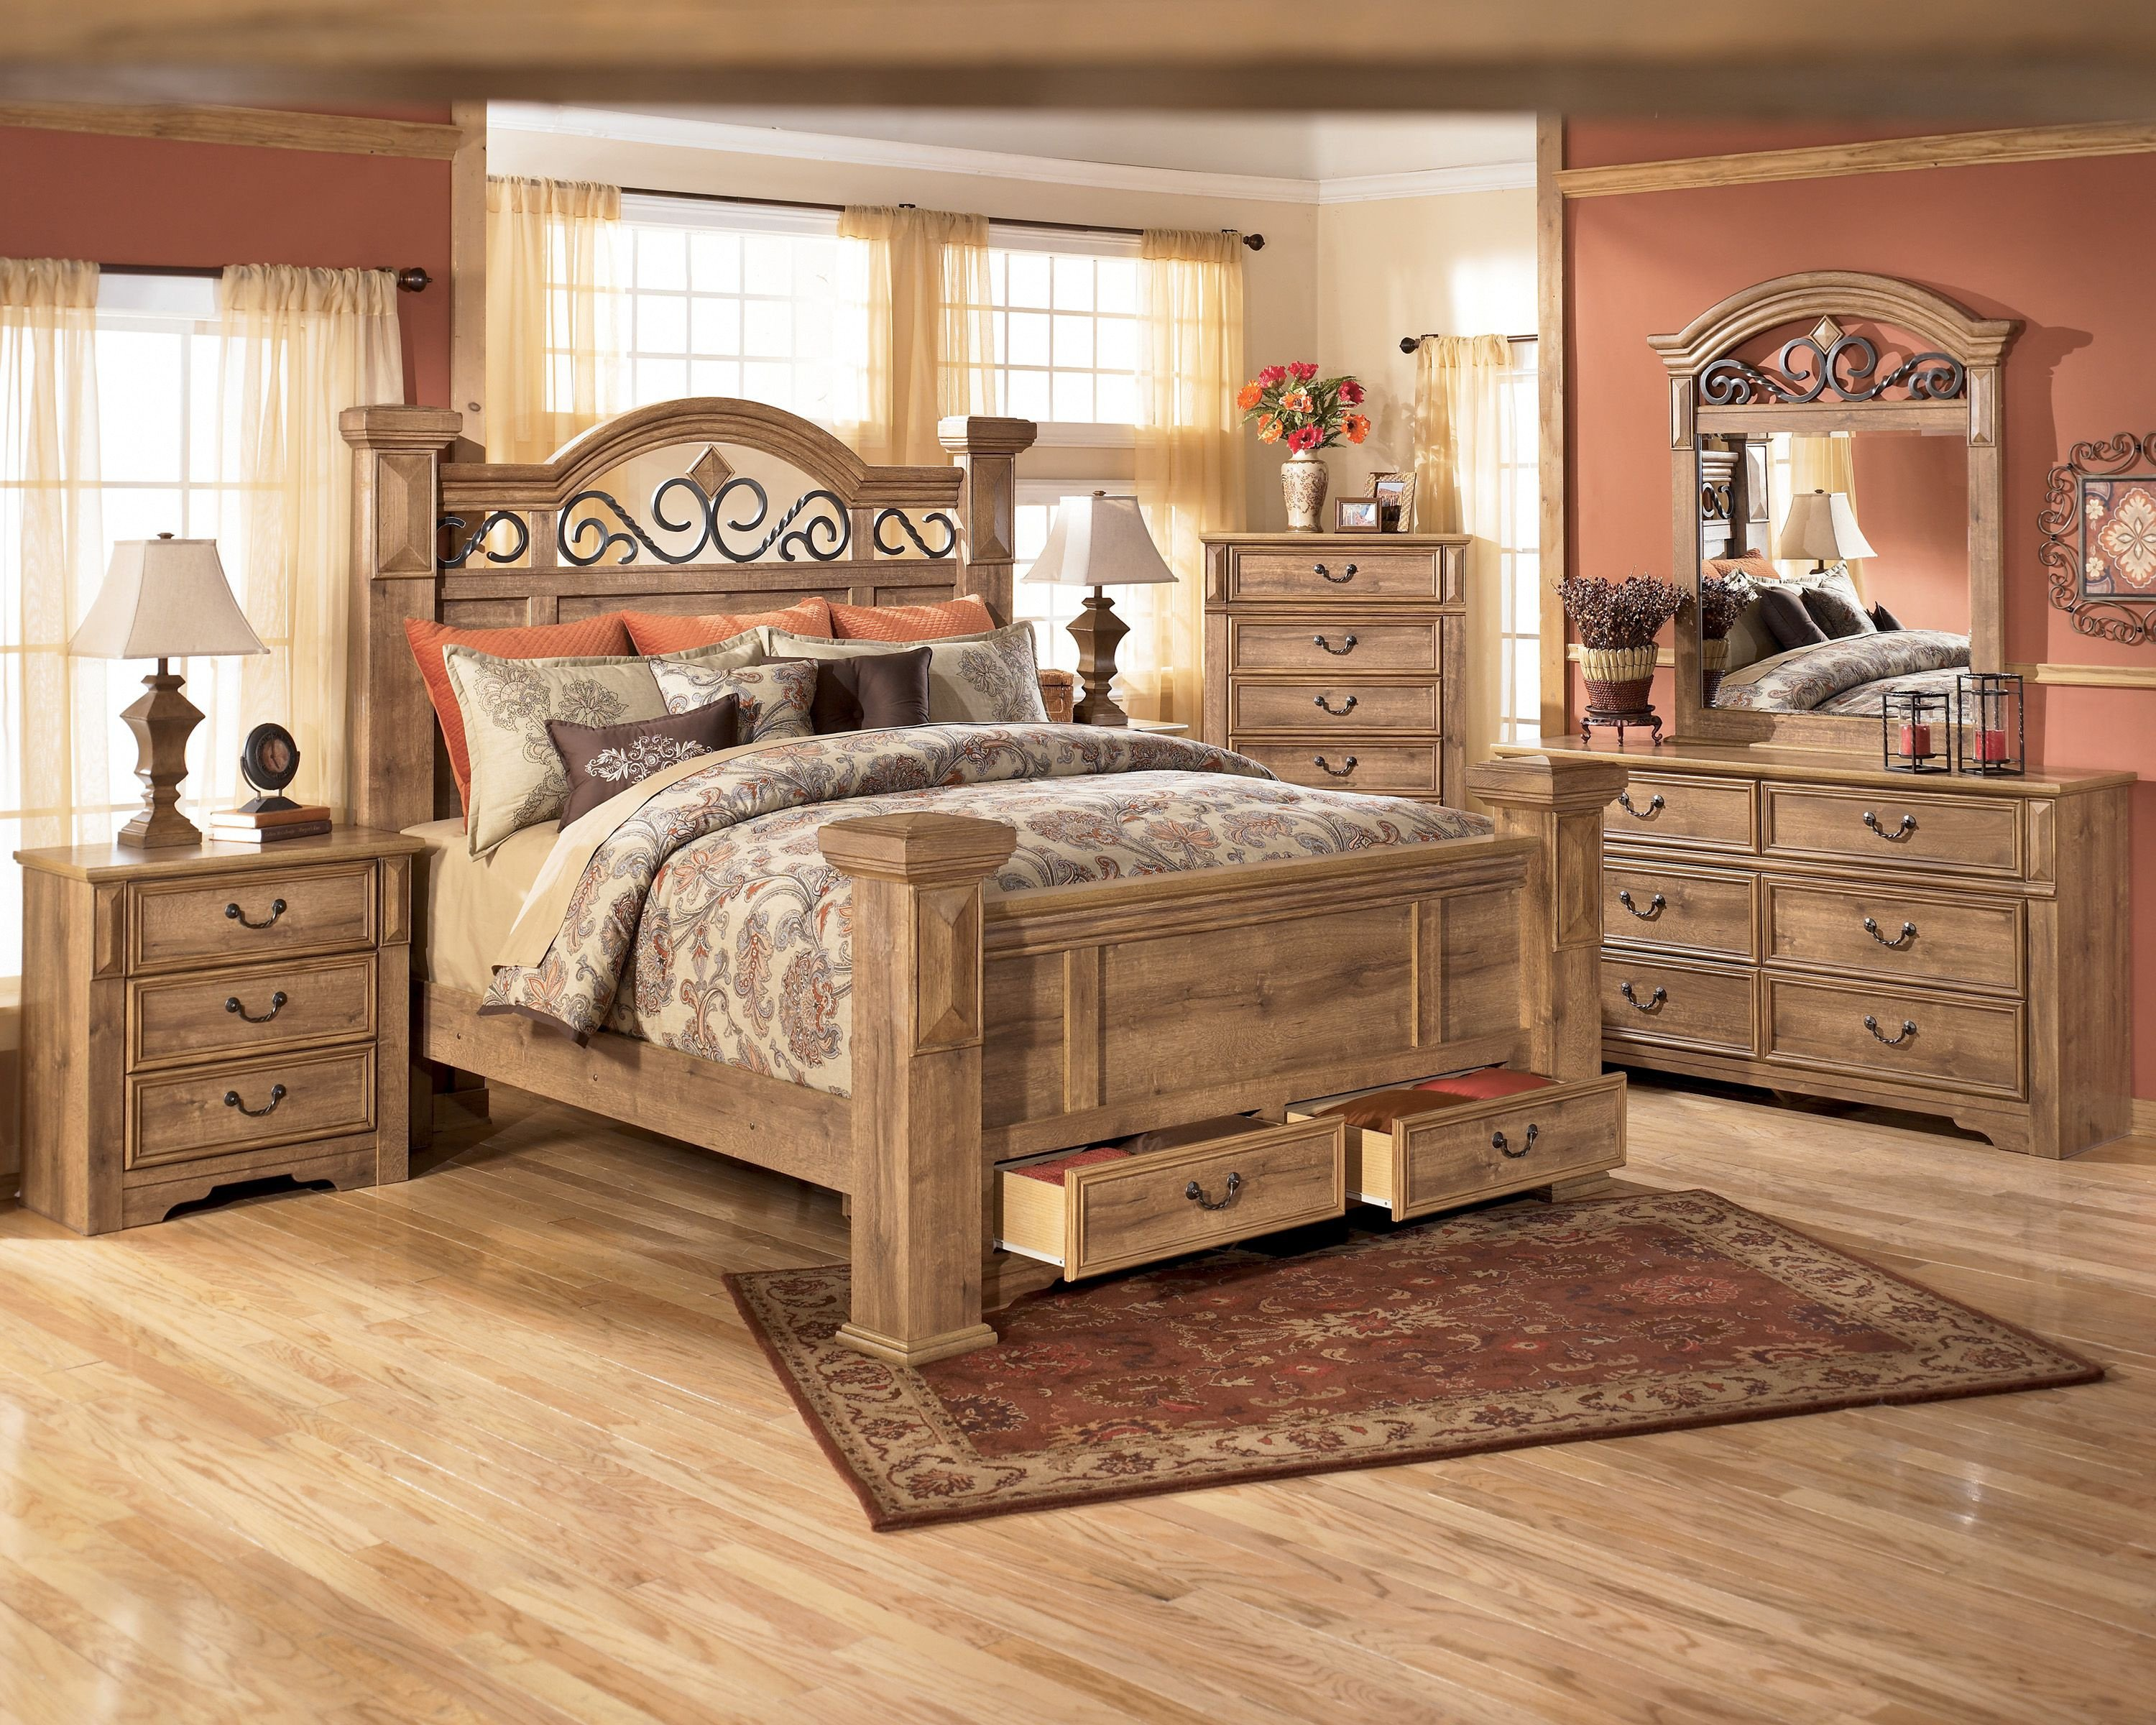 Ashley King Size Bedroom Set Inspirational Awesome Awesome Full Size Bed Set 89 Home Decorating